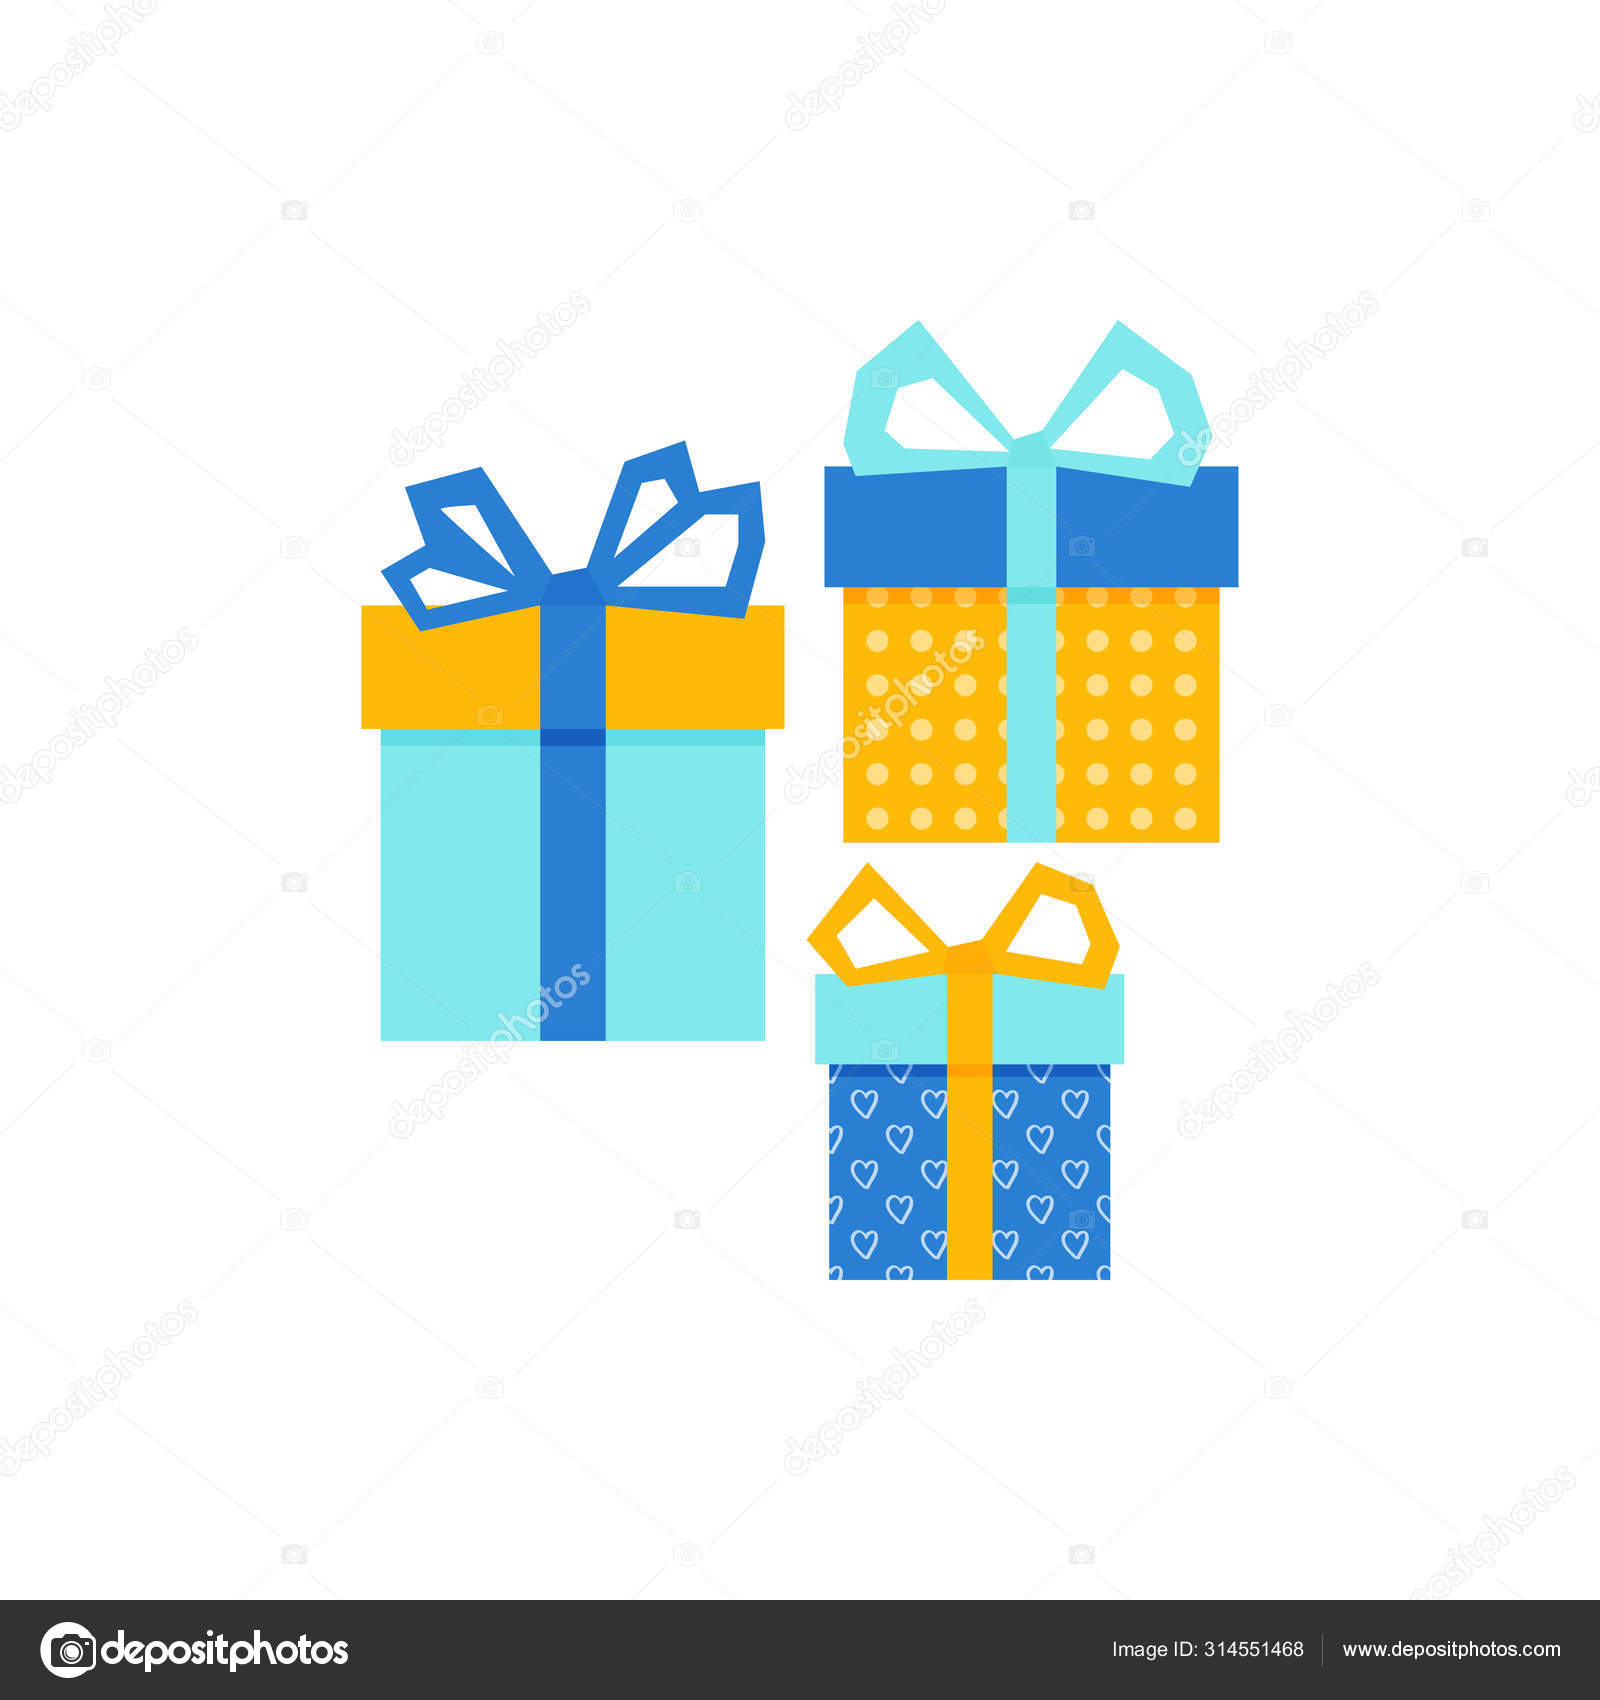 Set With Gift For Any Design Colorful Blank Cardboard Package Box Product Packaging White Background Surprise Symbol Gift Box Vector Design Template Holiday Background Christmas Vector Stock Vector C Julimurch 314551468